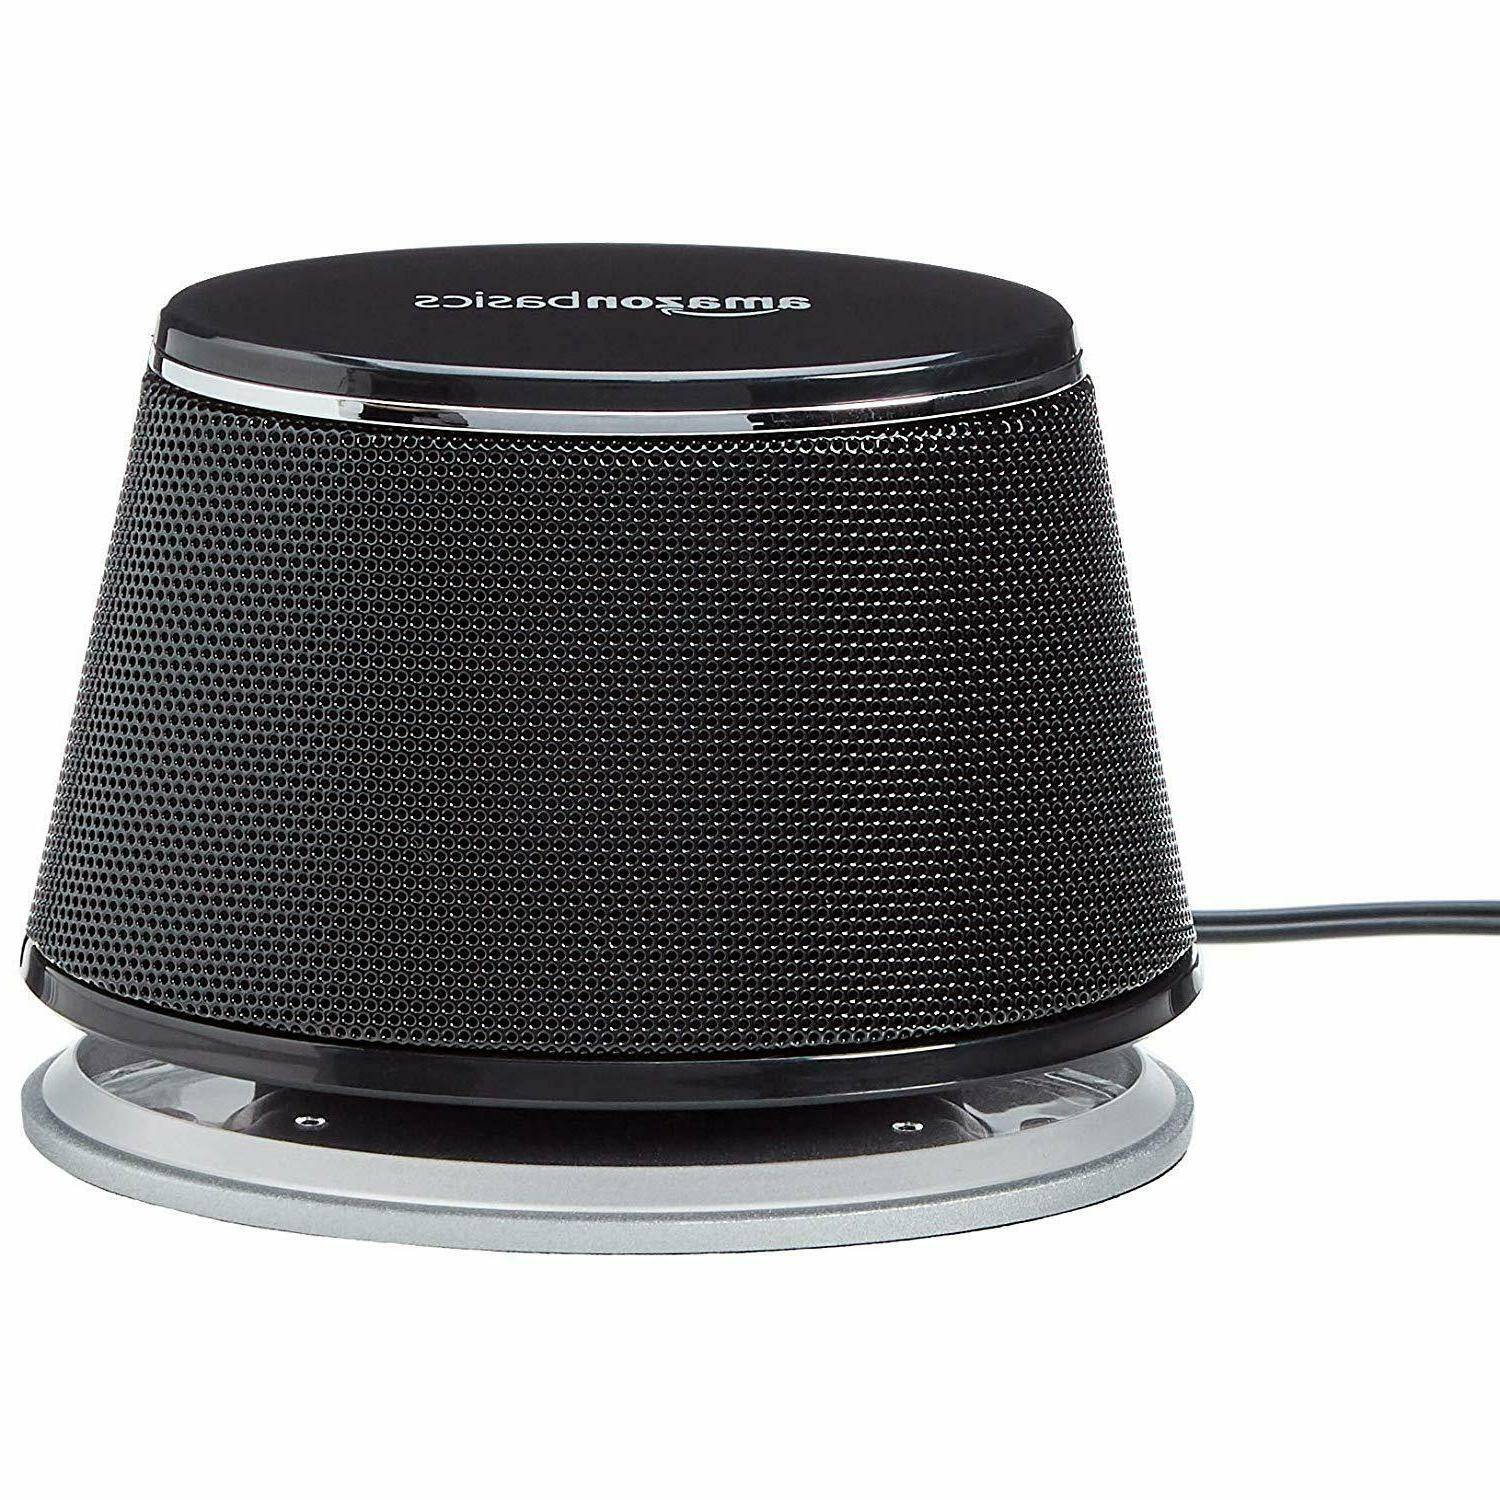 AmazonBasics PC Speakers with Dynamic | Black